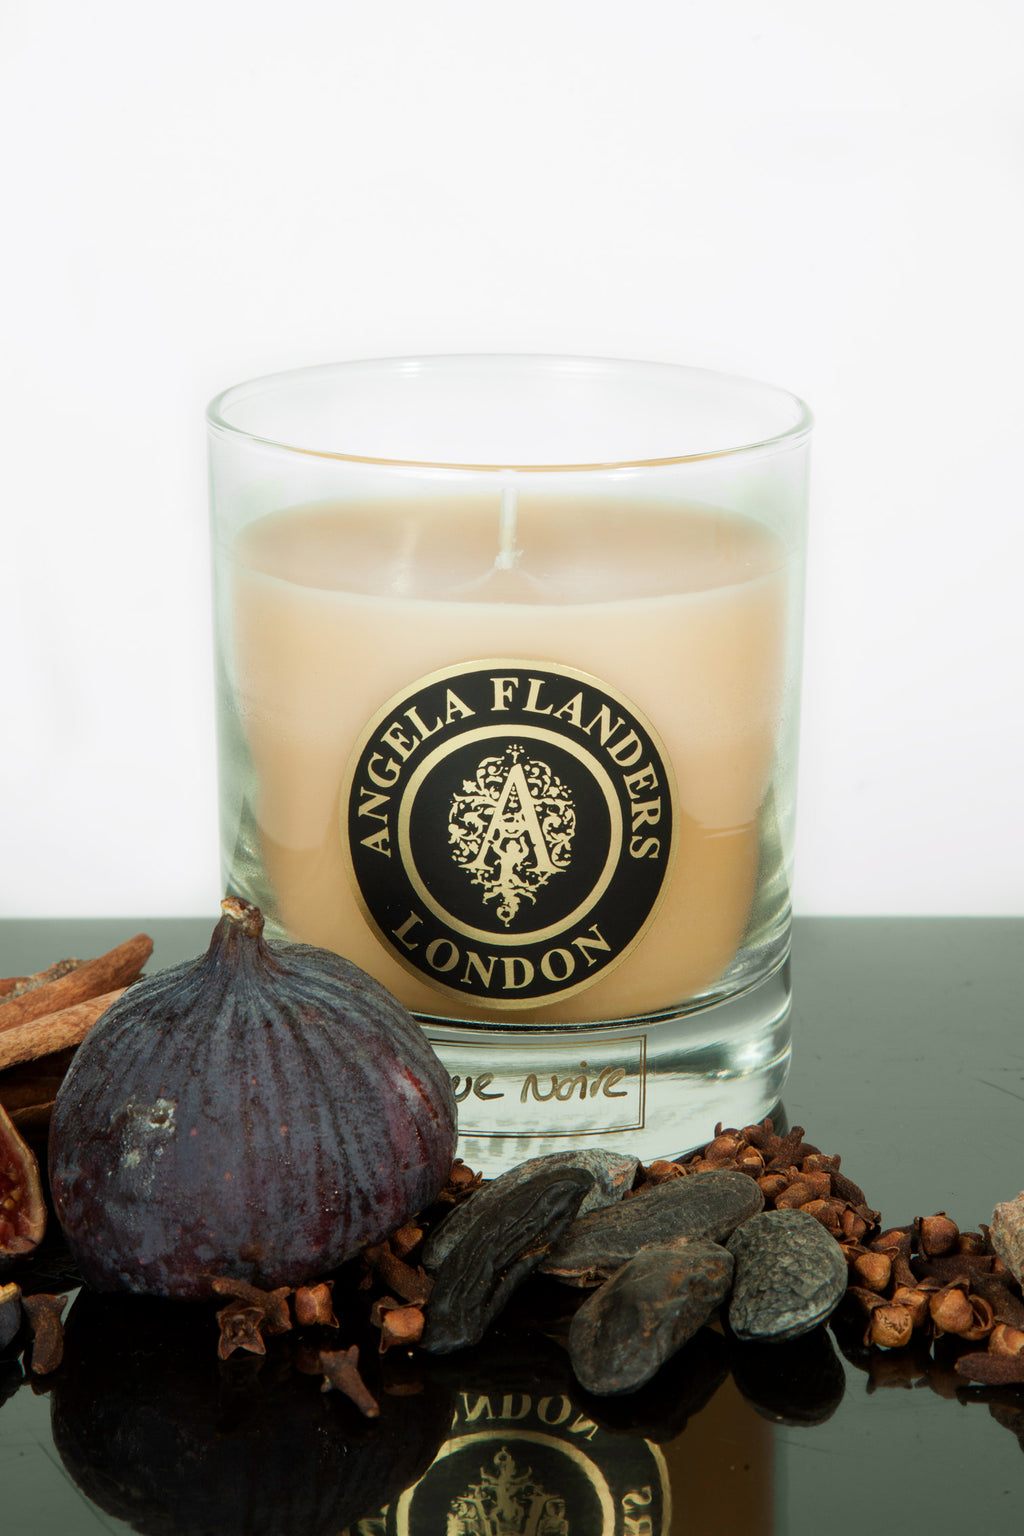 Angela Flanders Figue Noire Perfumed Candle